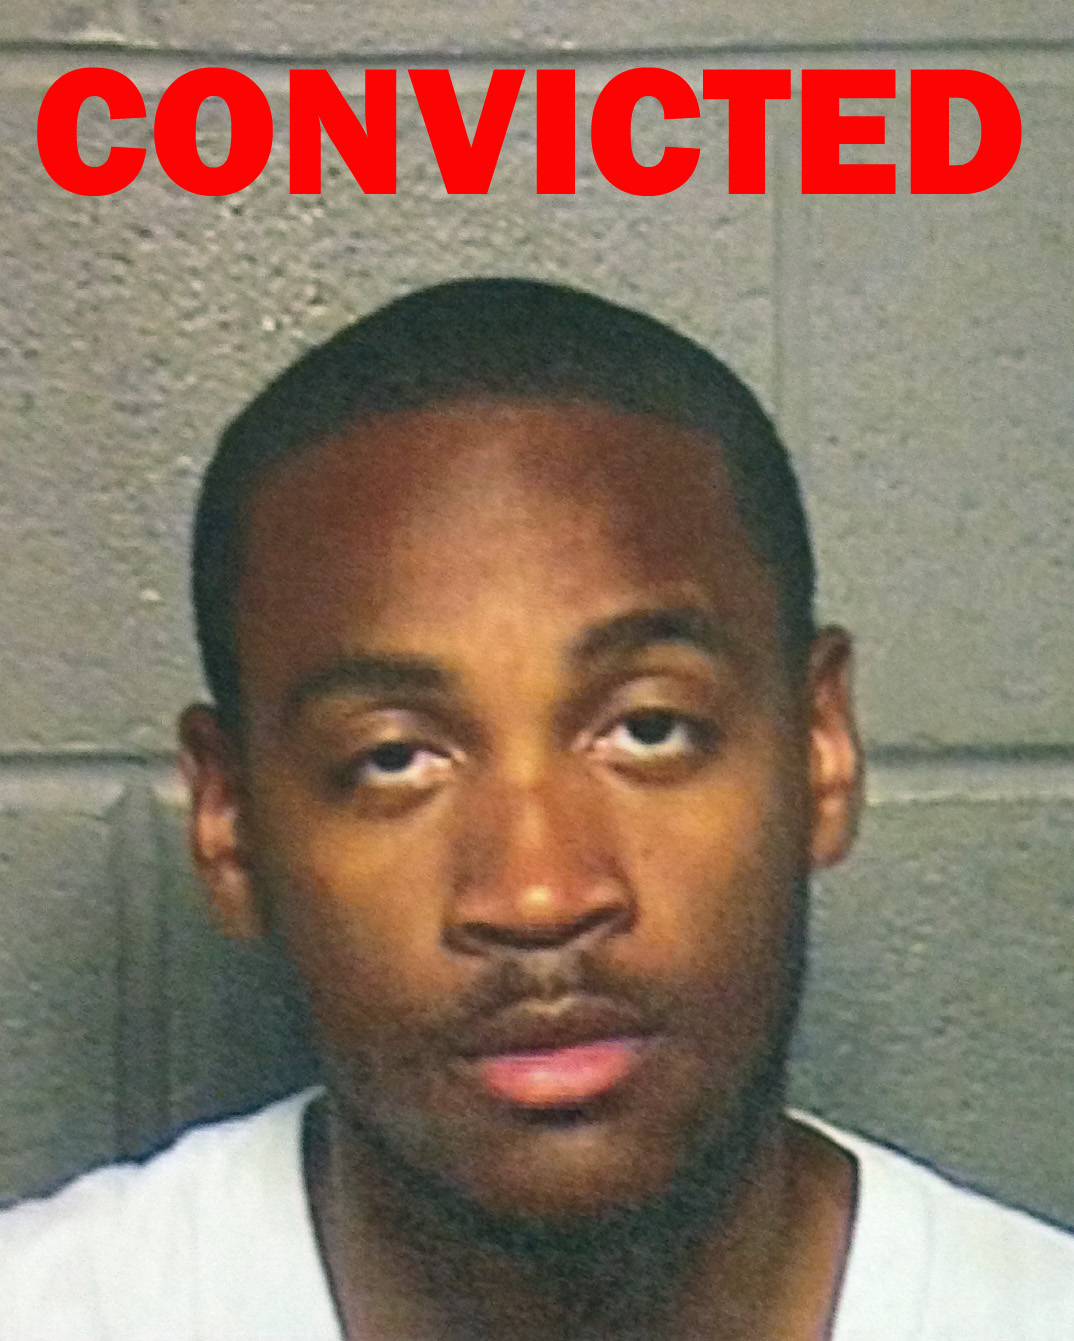 Donald Raynor was convicted of Murder in the homicide of Delano Gray.